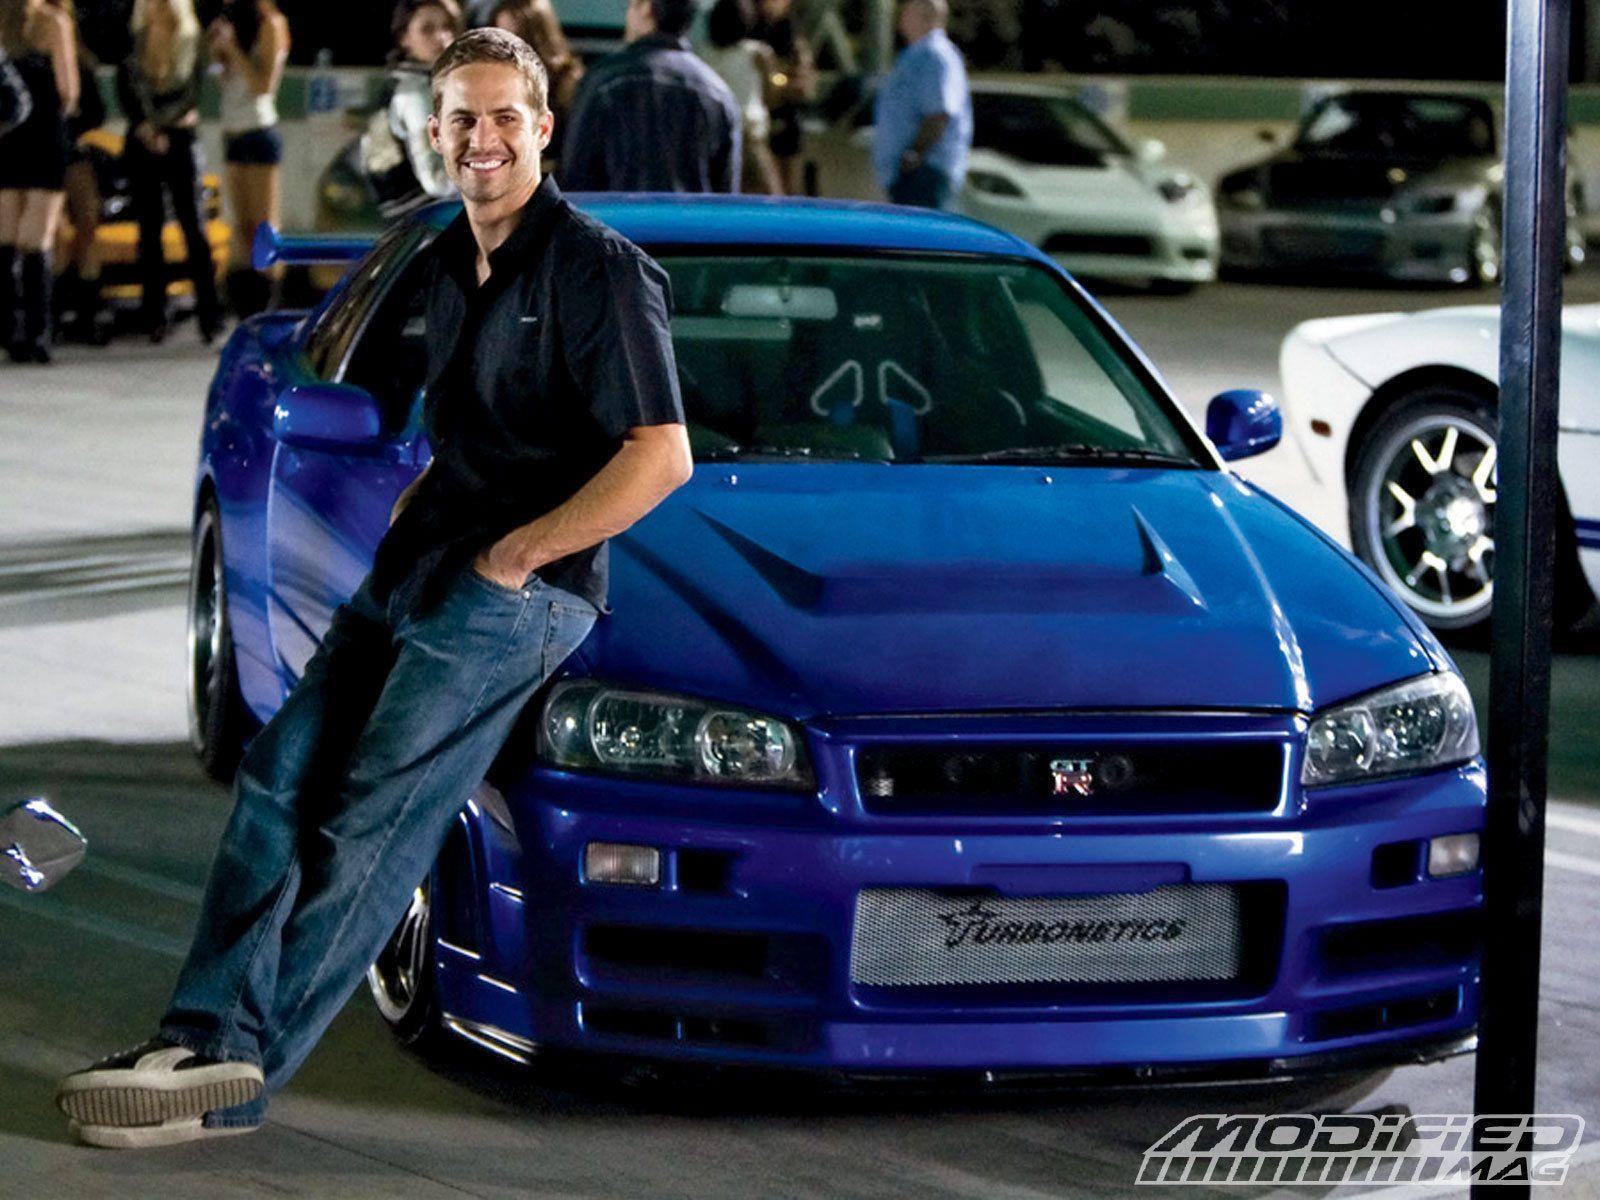 Actor Paul Walker and his awesome car wallpapers and image